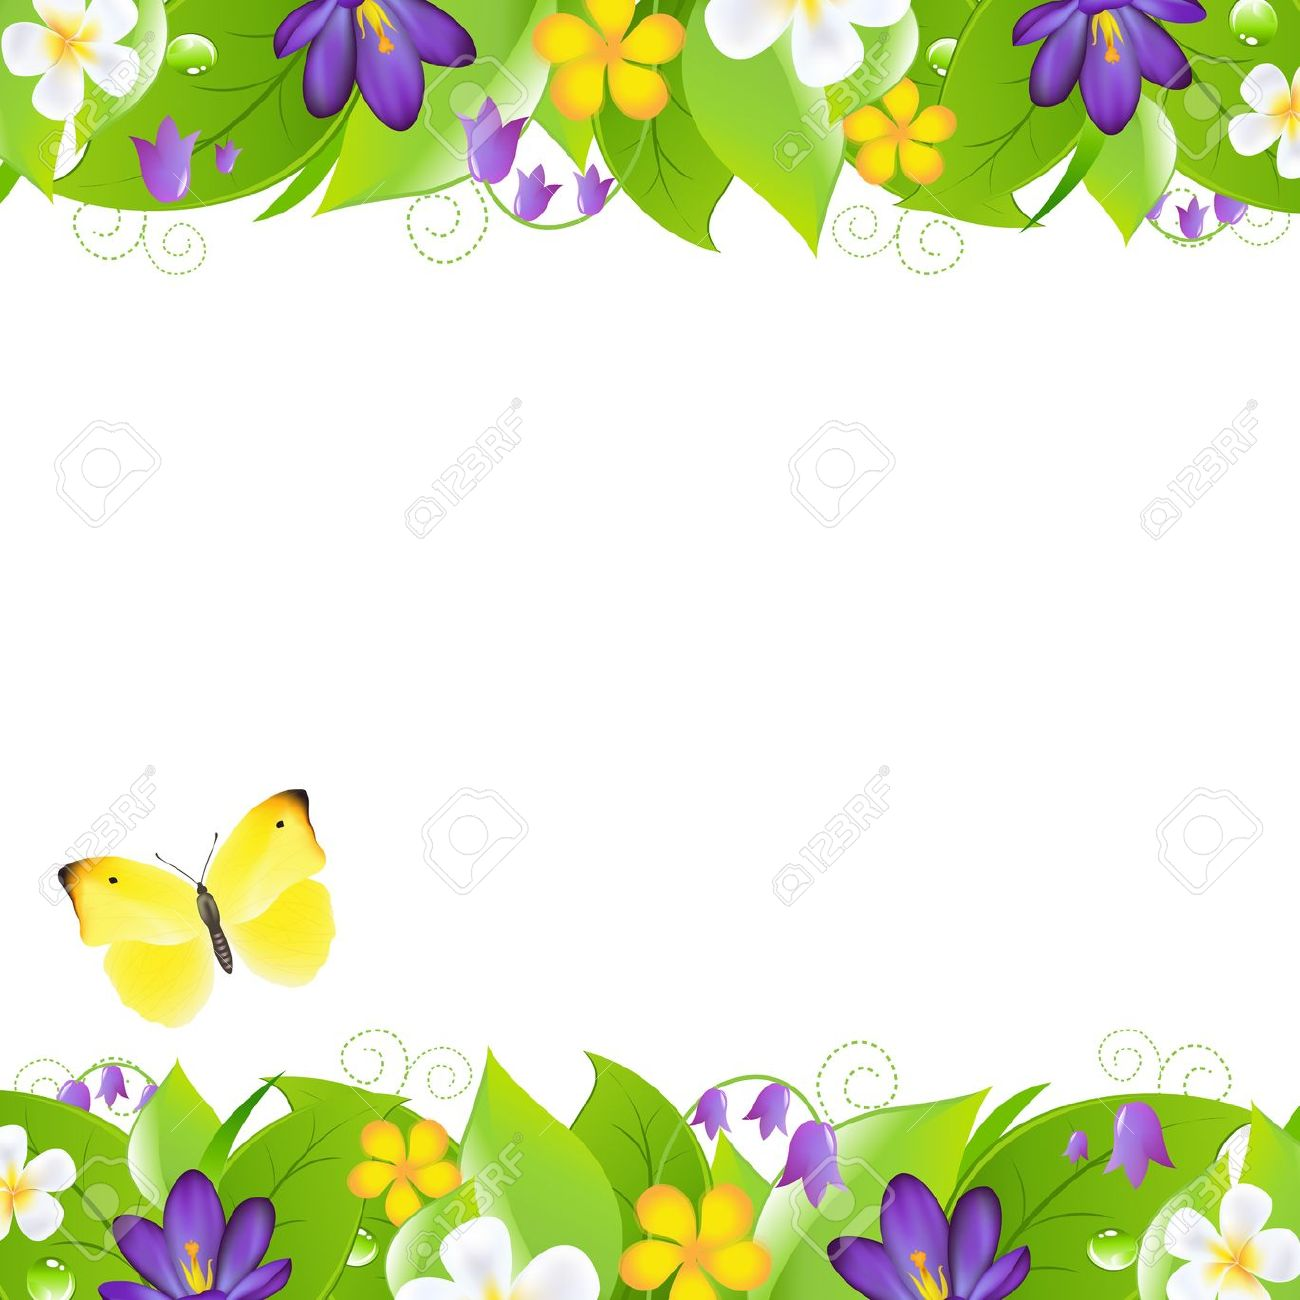 Flowers and borders image freeuse download Borders and flowers - ClipartFest image freeuse download